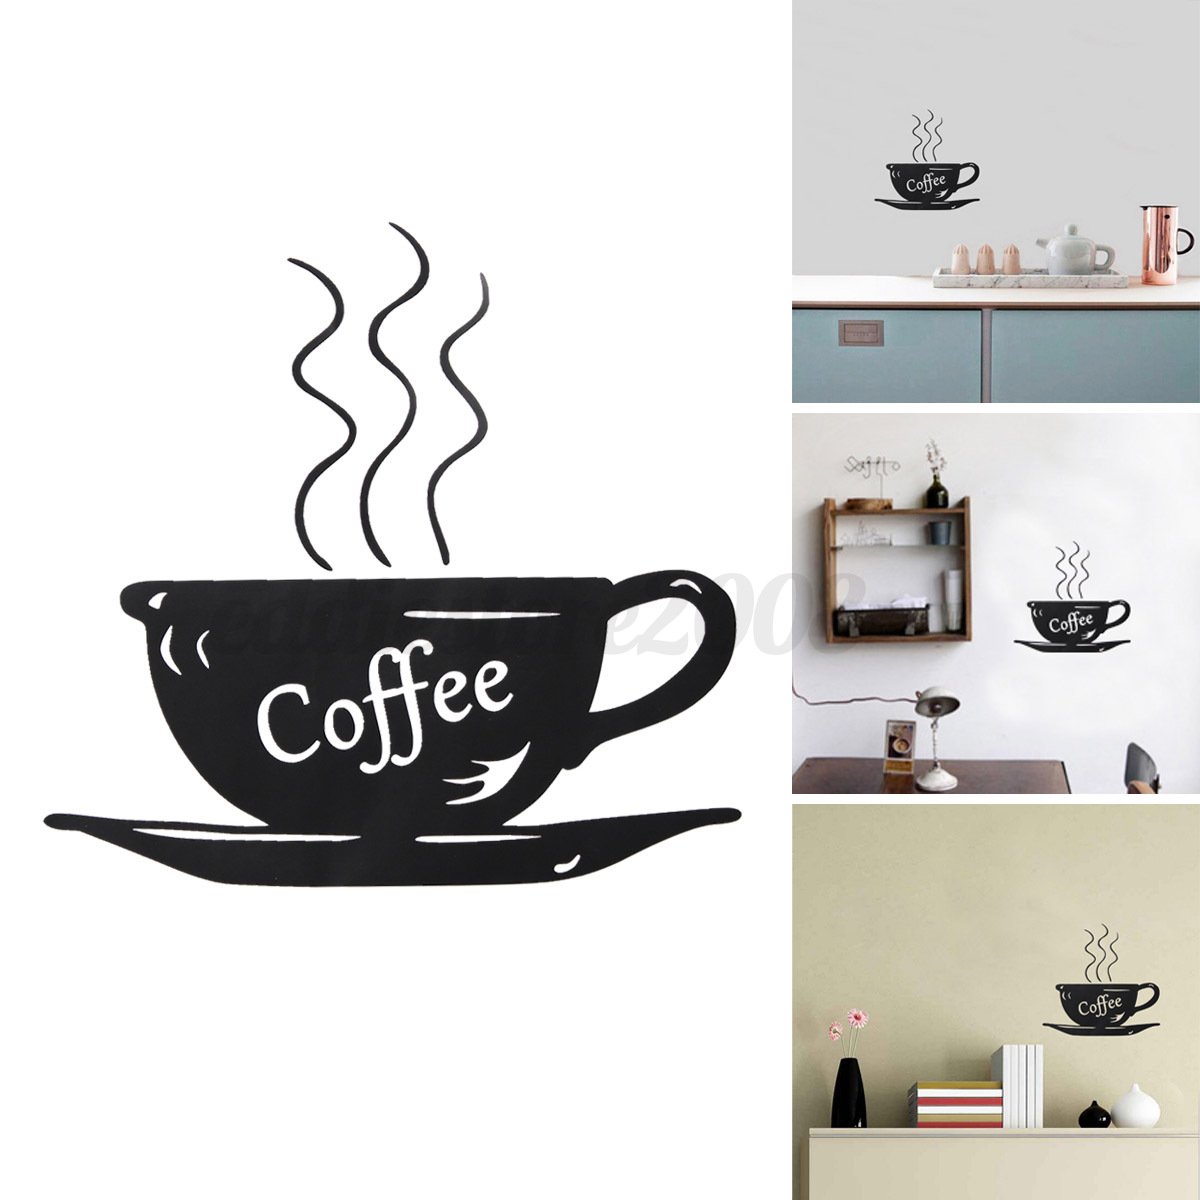 tea time cup wall stickers coffee cafe home kitchen refrigerator decal art decor ebay. Black Bedroom Furniture Sets. Home Design Ideas